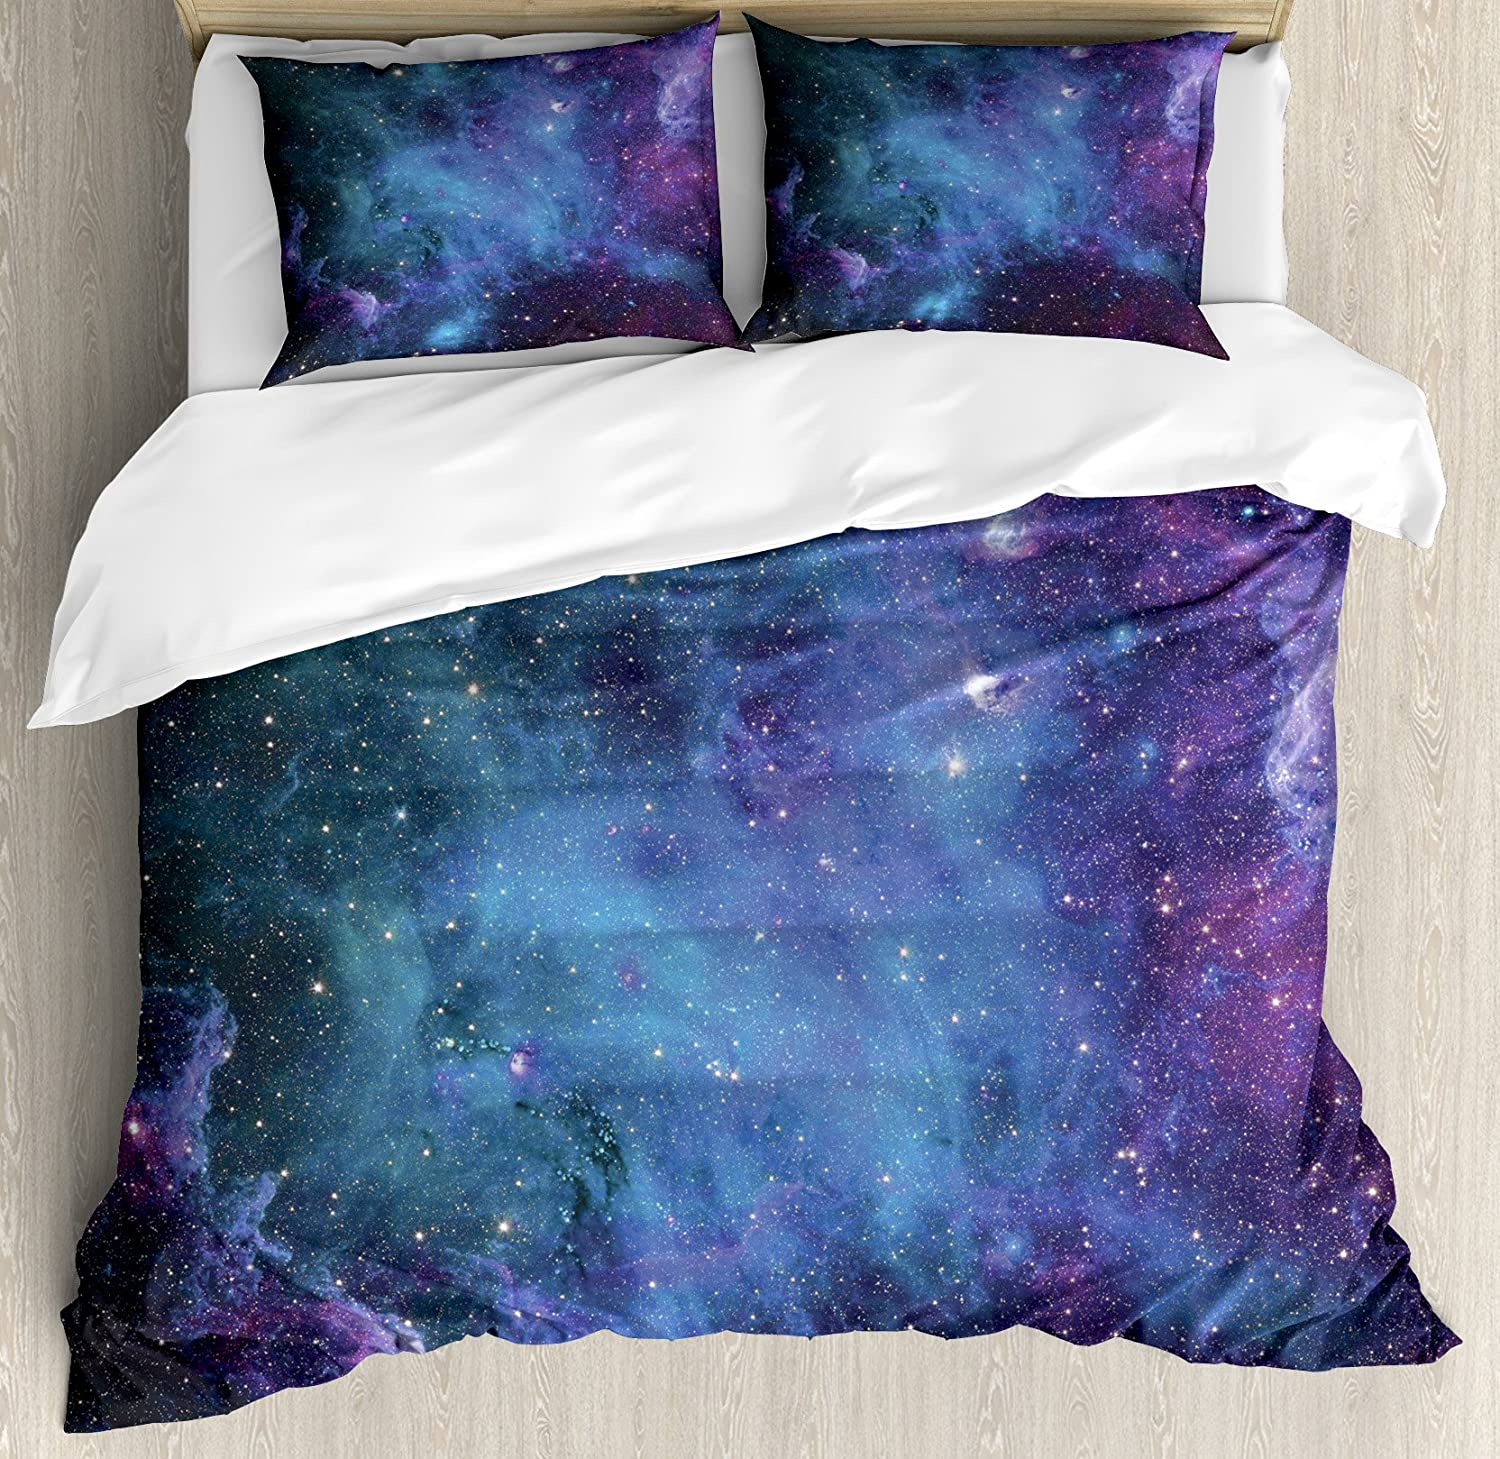 Ambesonne Space Decorations Duvet Cover Set, Galaxy Stars in Space Celestial Astronomic Planets in The Universe Milky Way Print, 3 Piece Bedding Set with Pillow Shams, Queen/Full, Navy Purple